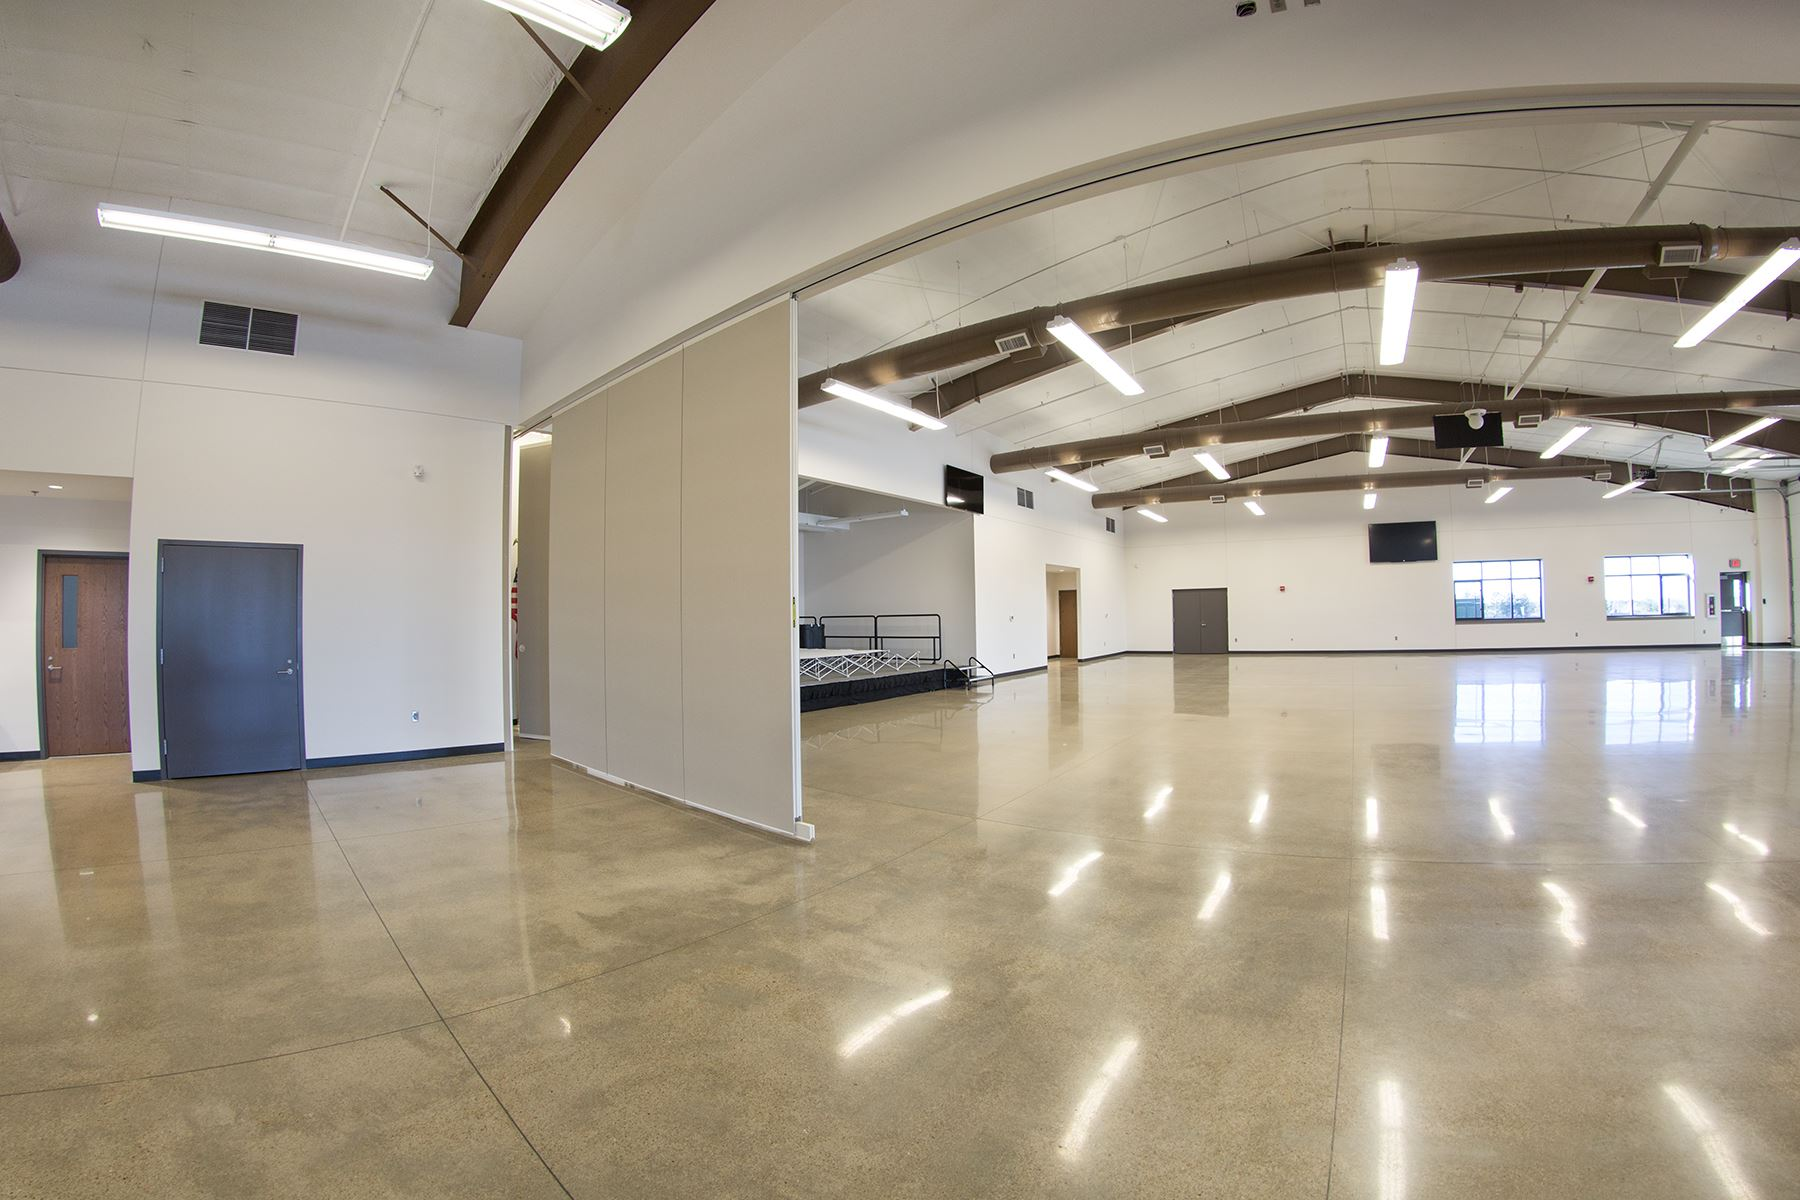 Large Room in Stastny Community Center with Florecent Lights and Room Dividers